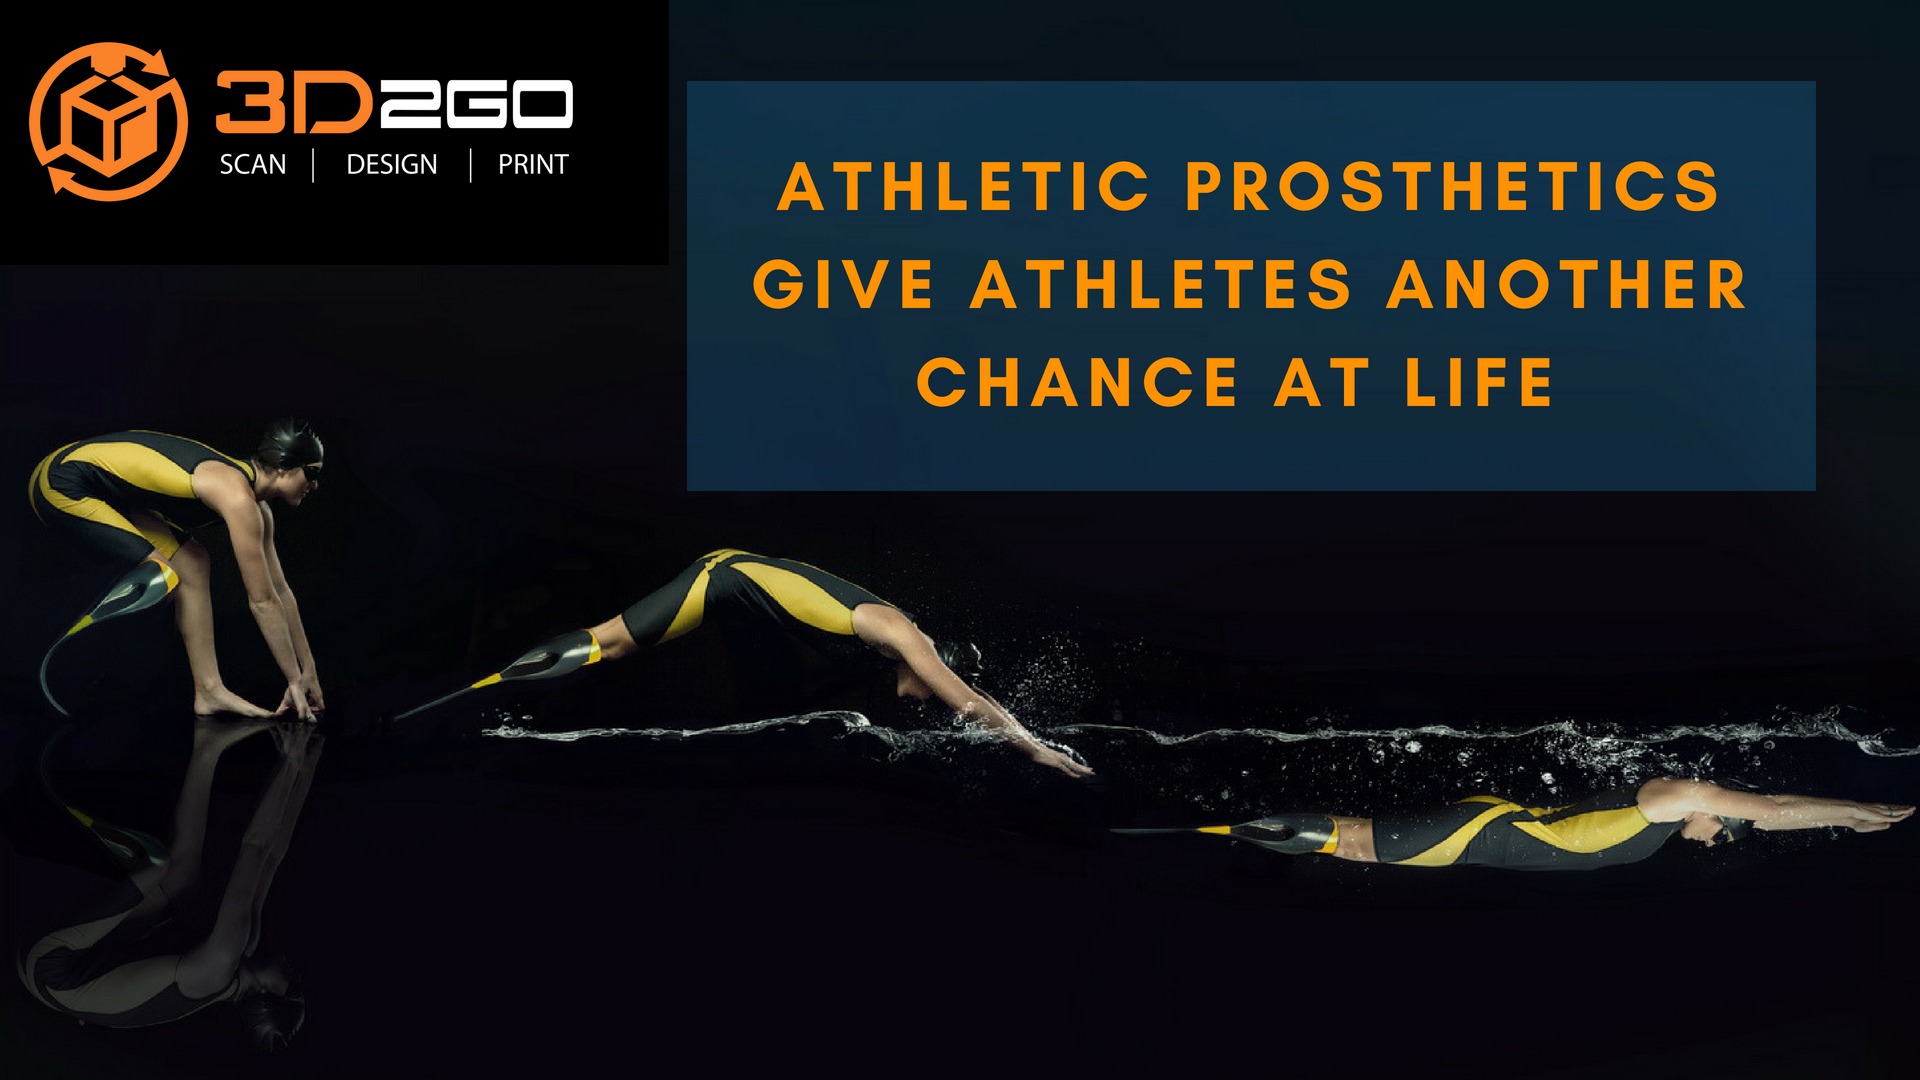 athletic prosthetics